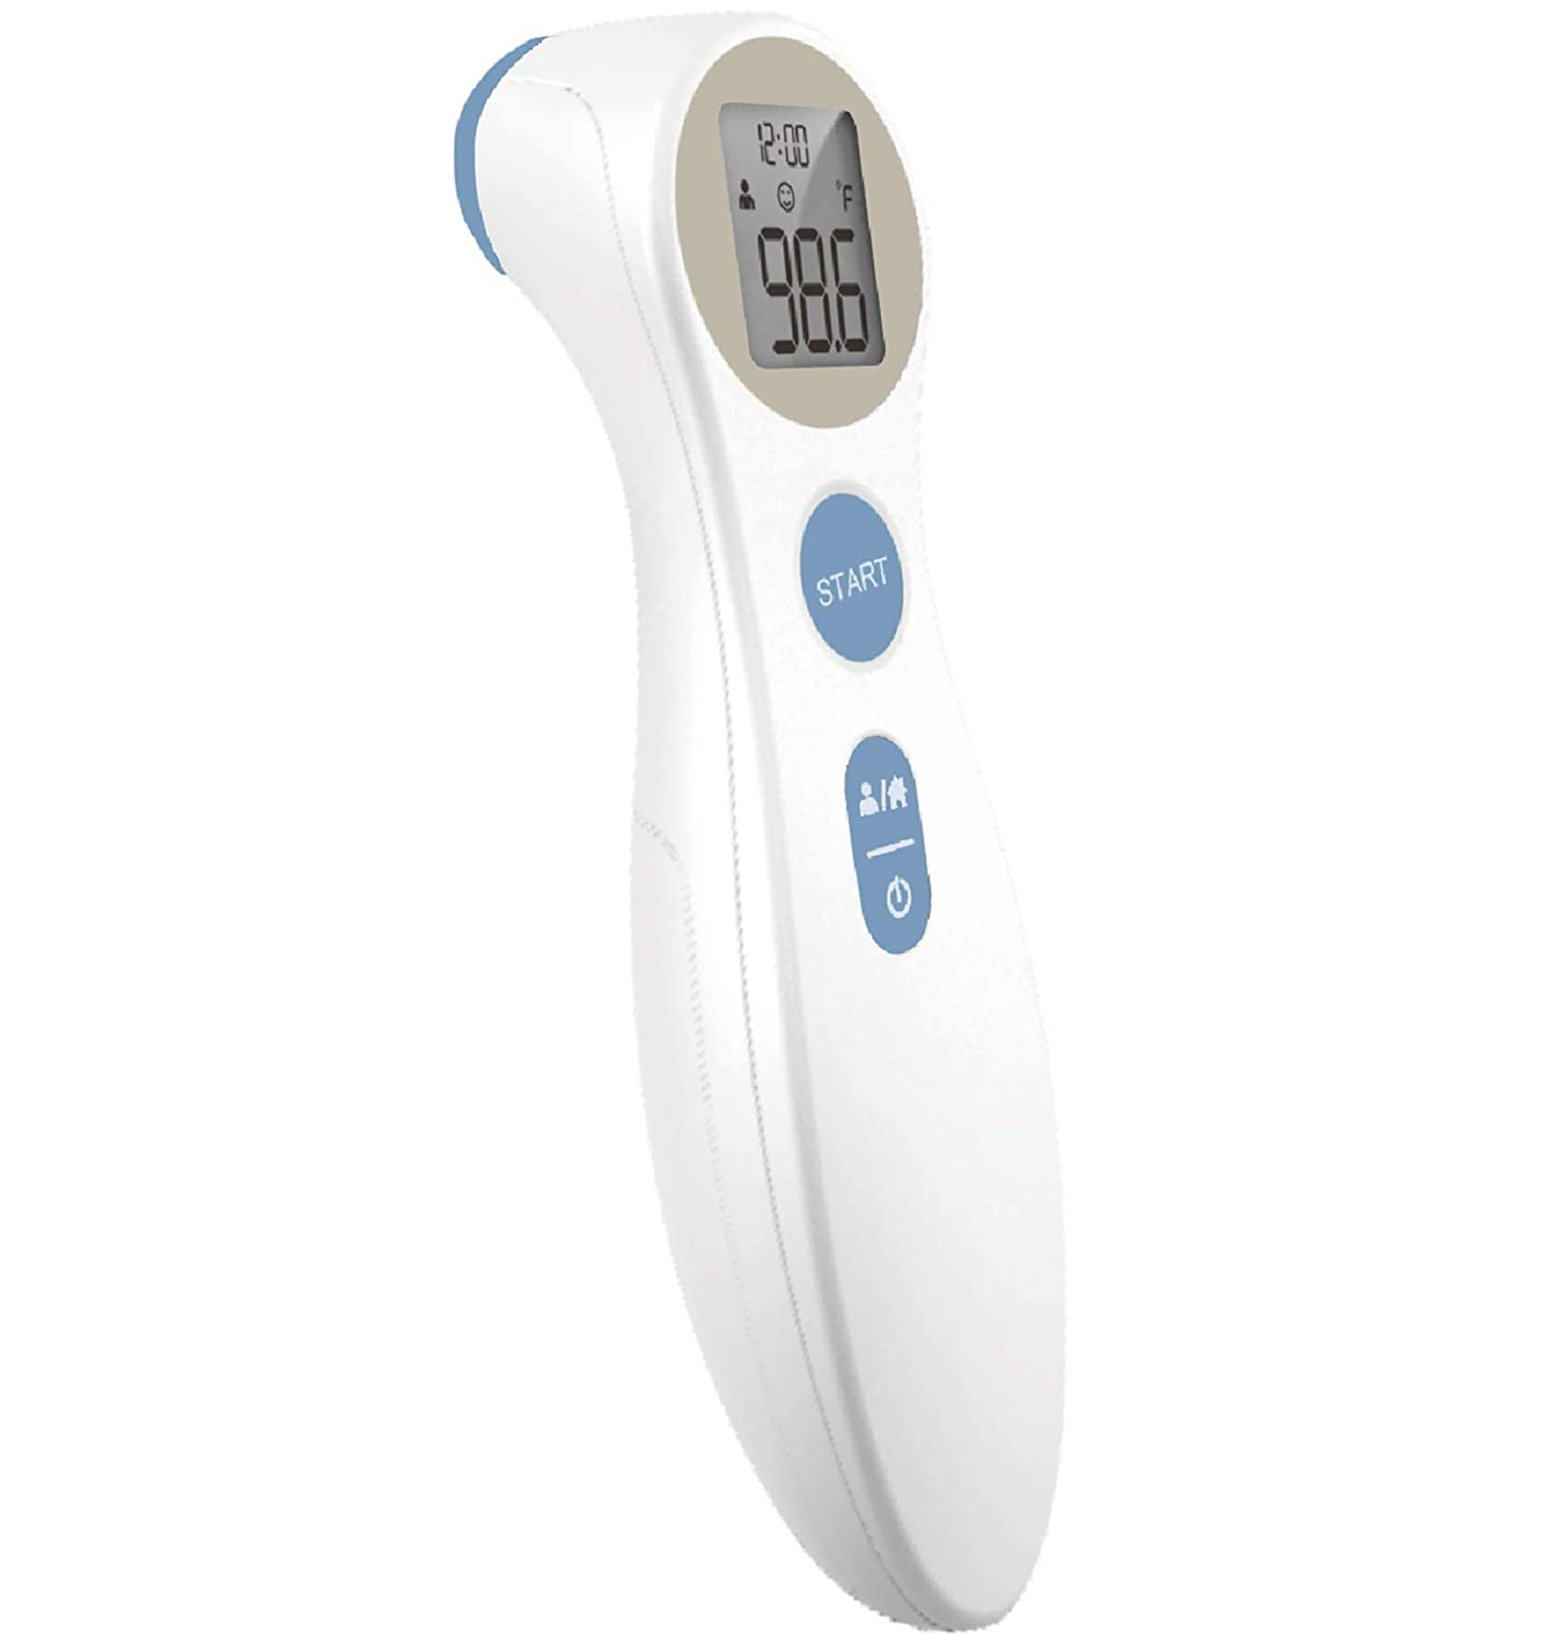 For Covid-19. Thermometer